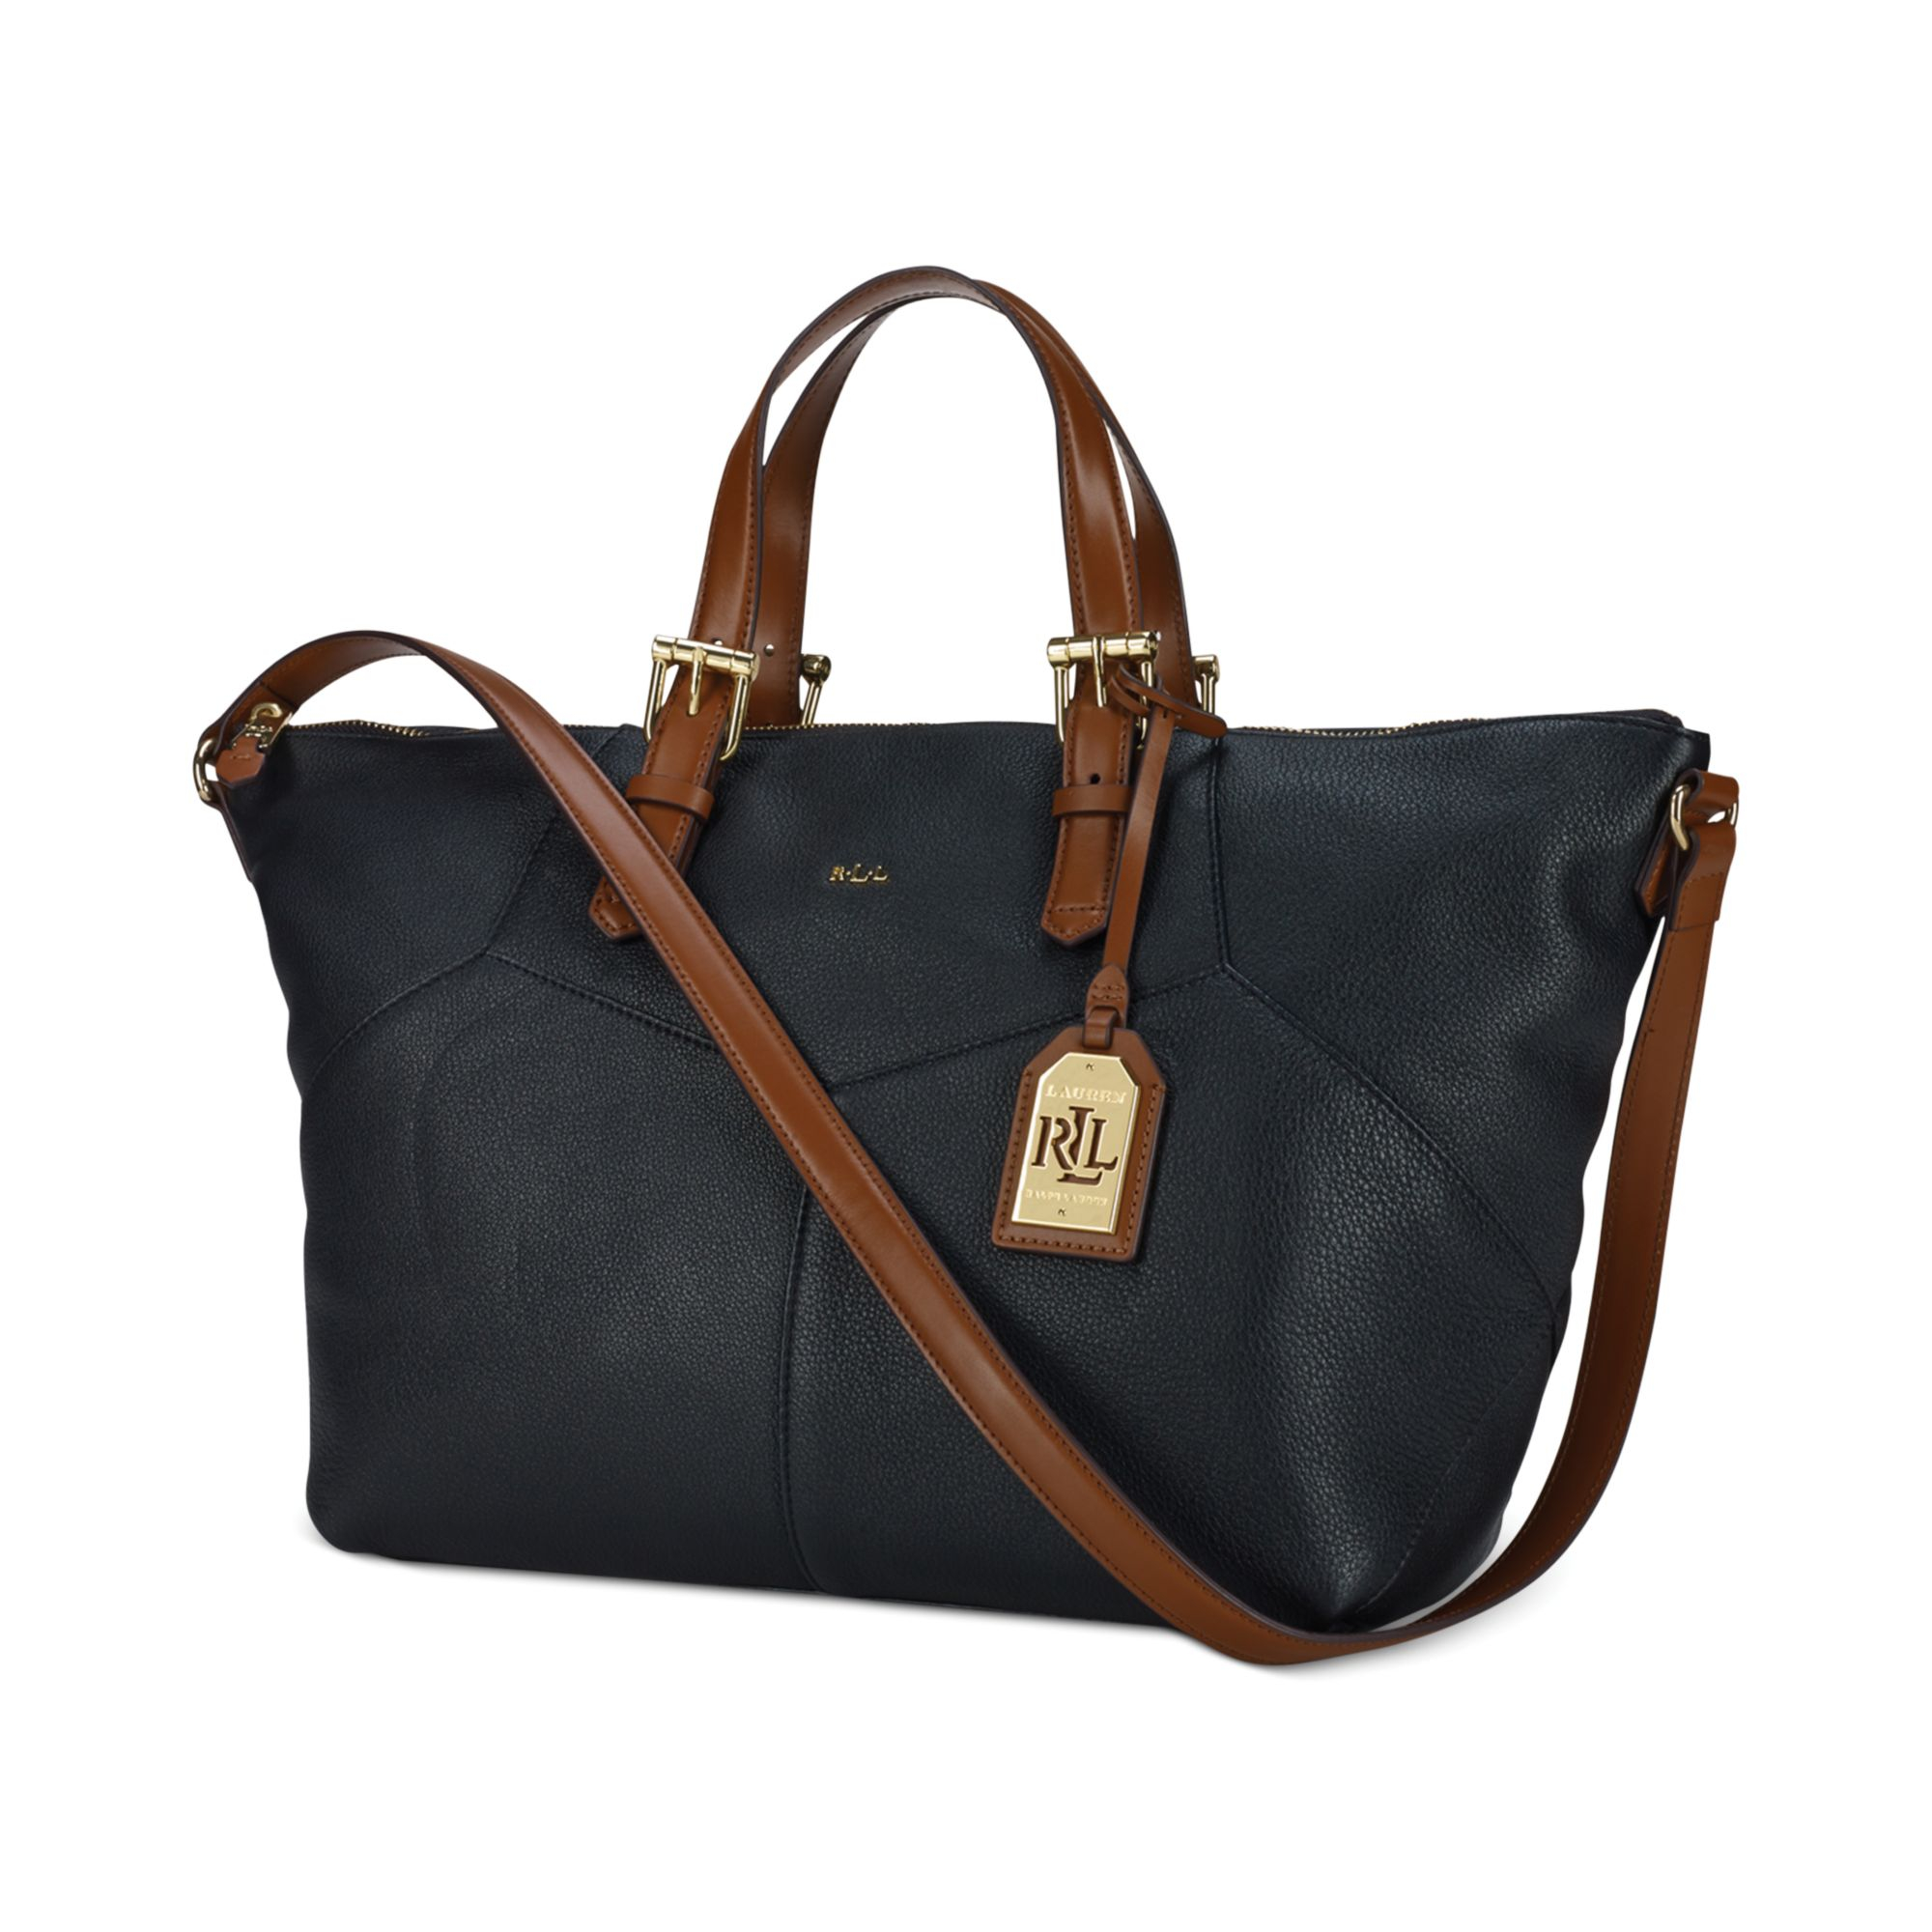 Ralph Lauren Tote Laukku : Lauren by ralph landry satchel tote in black